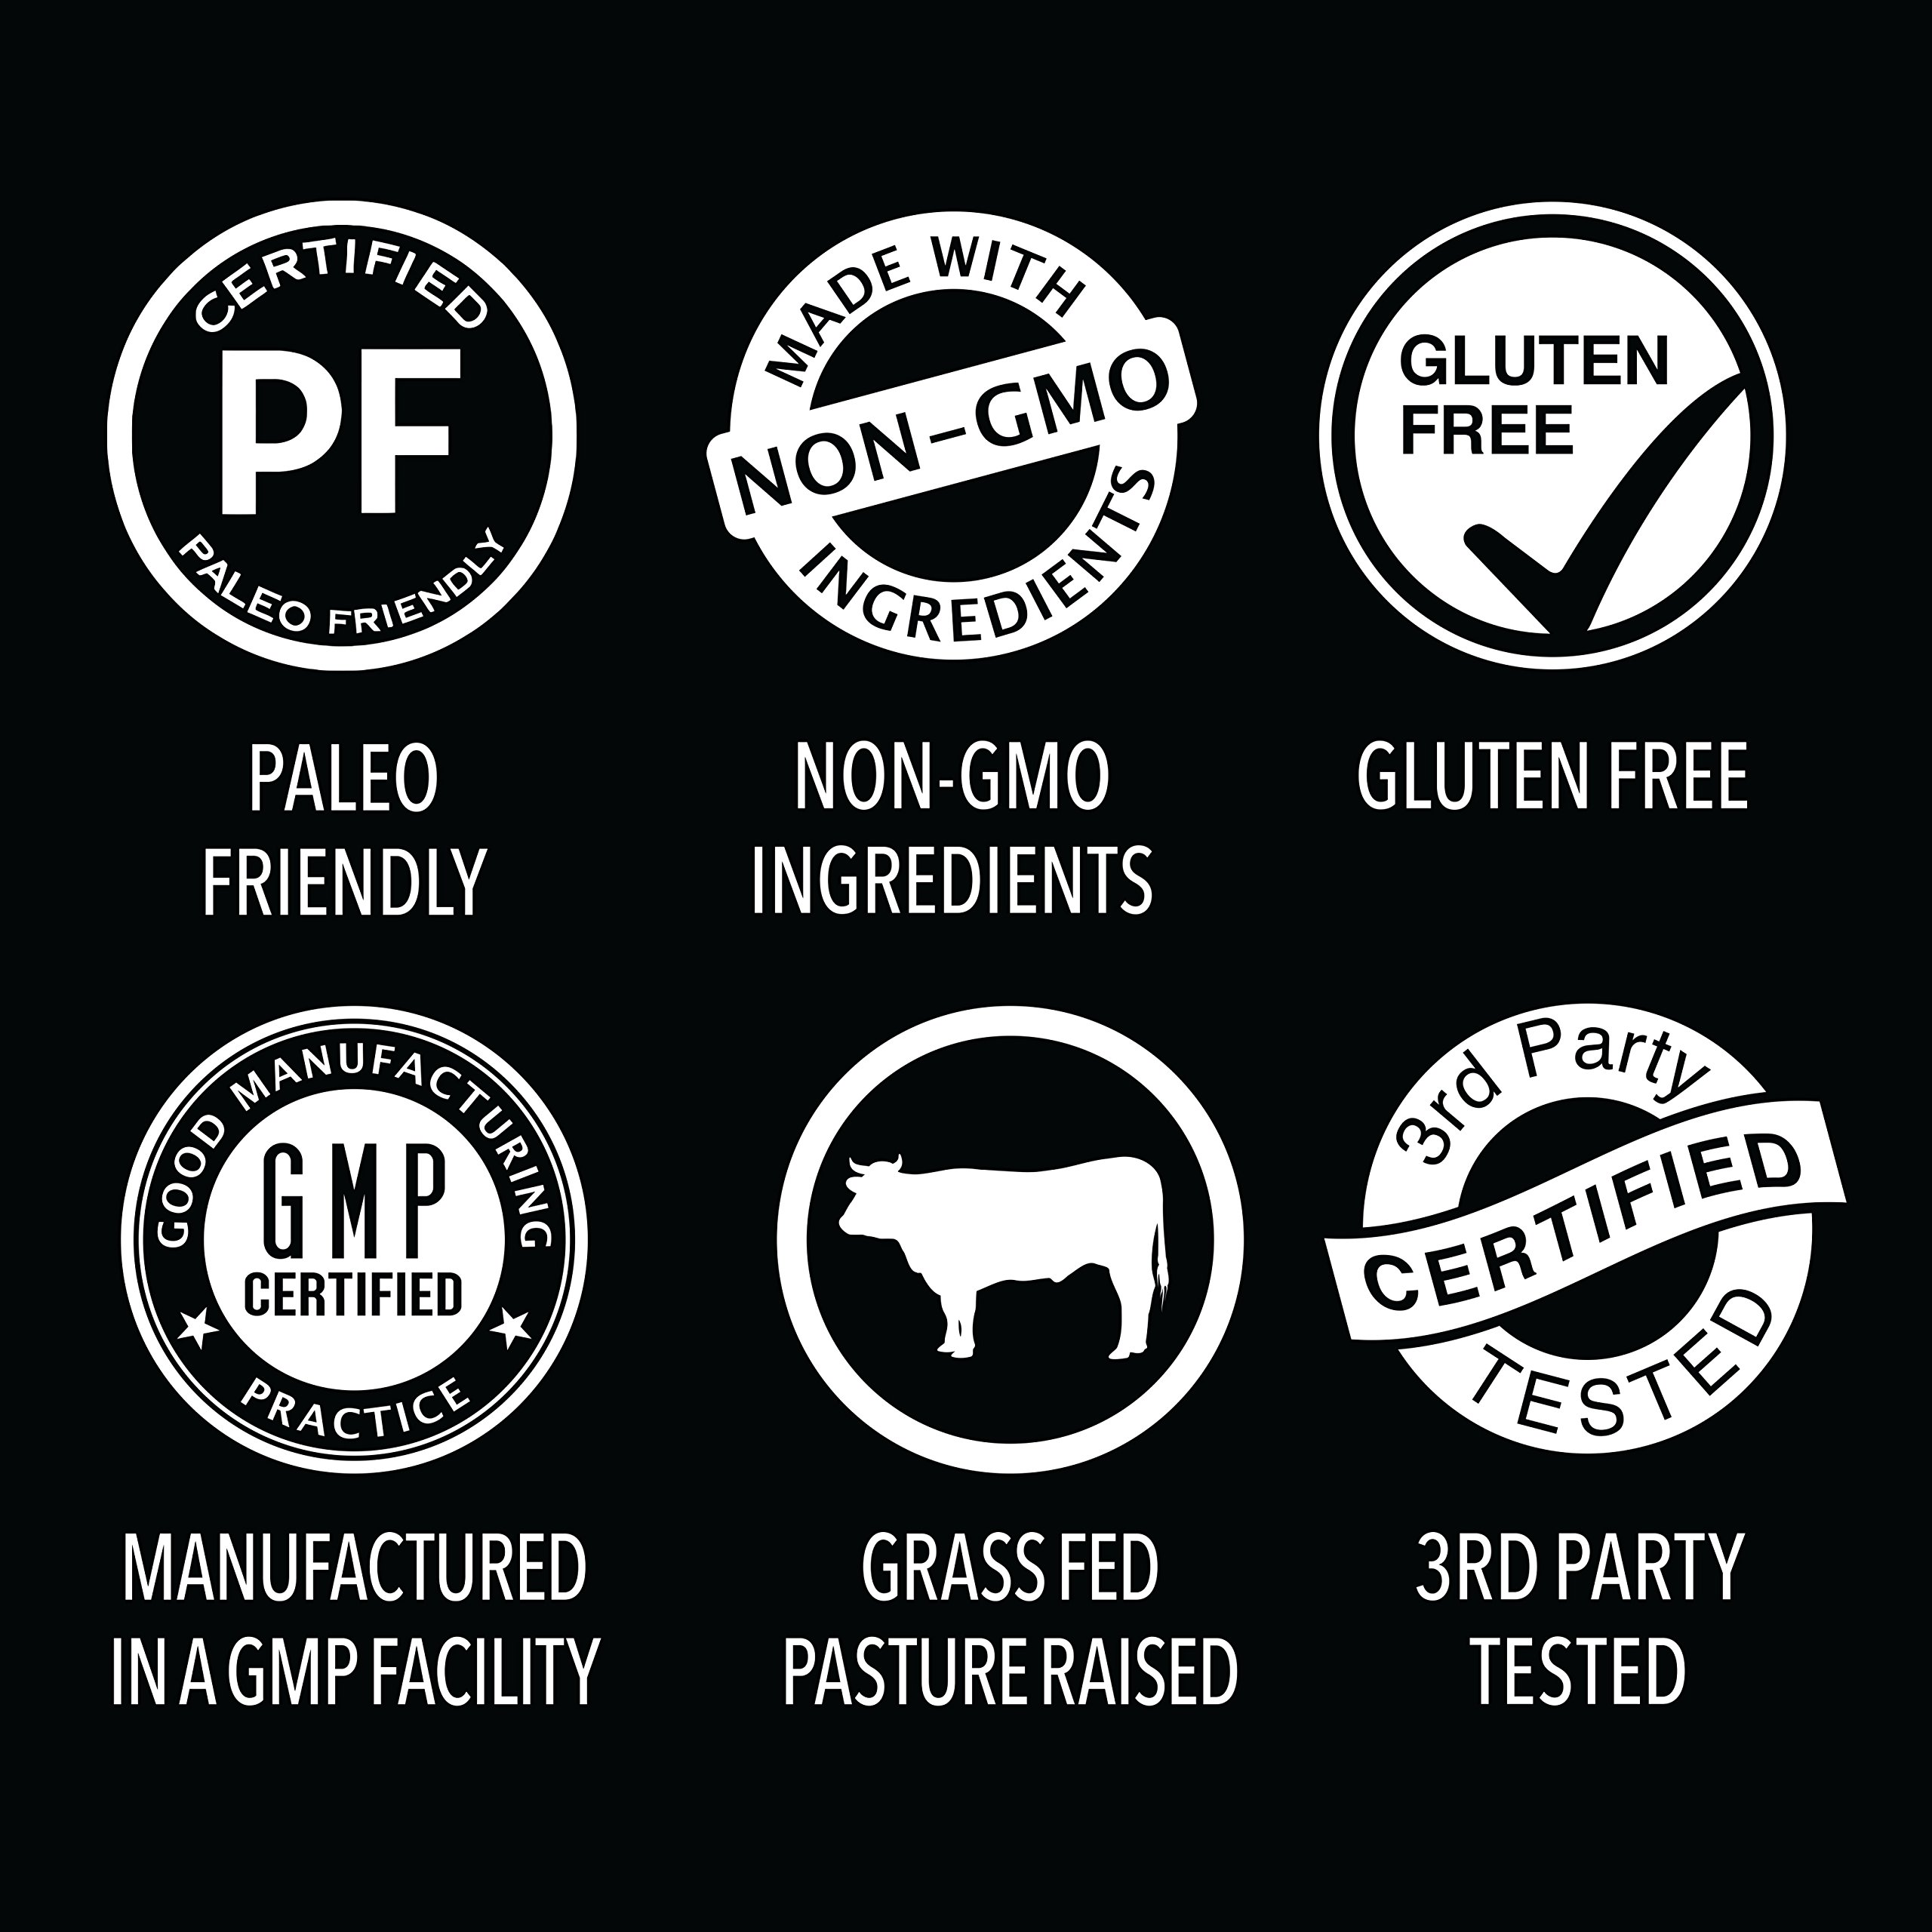 Gelatin Collagen Cooking Powder ~ Sourced from Pasture Raised,Grass-Fed Cows ~ Great for Cooking and Baking~ Certified Keto Friendly and Non-GMO (16oz) by Sports Research (Image #3)